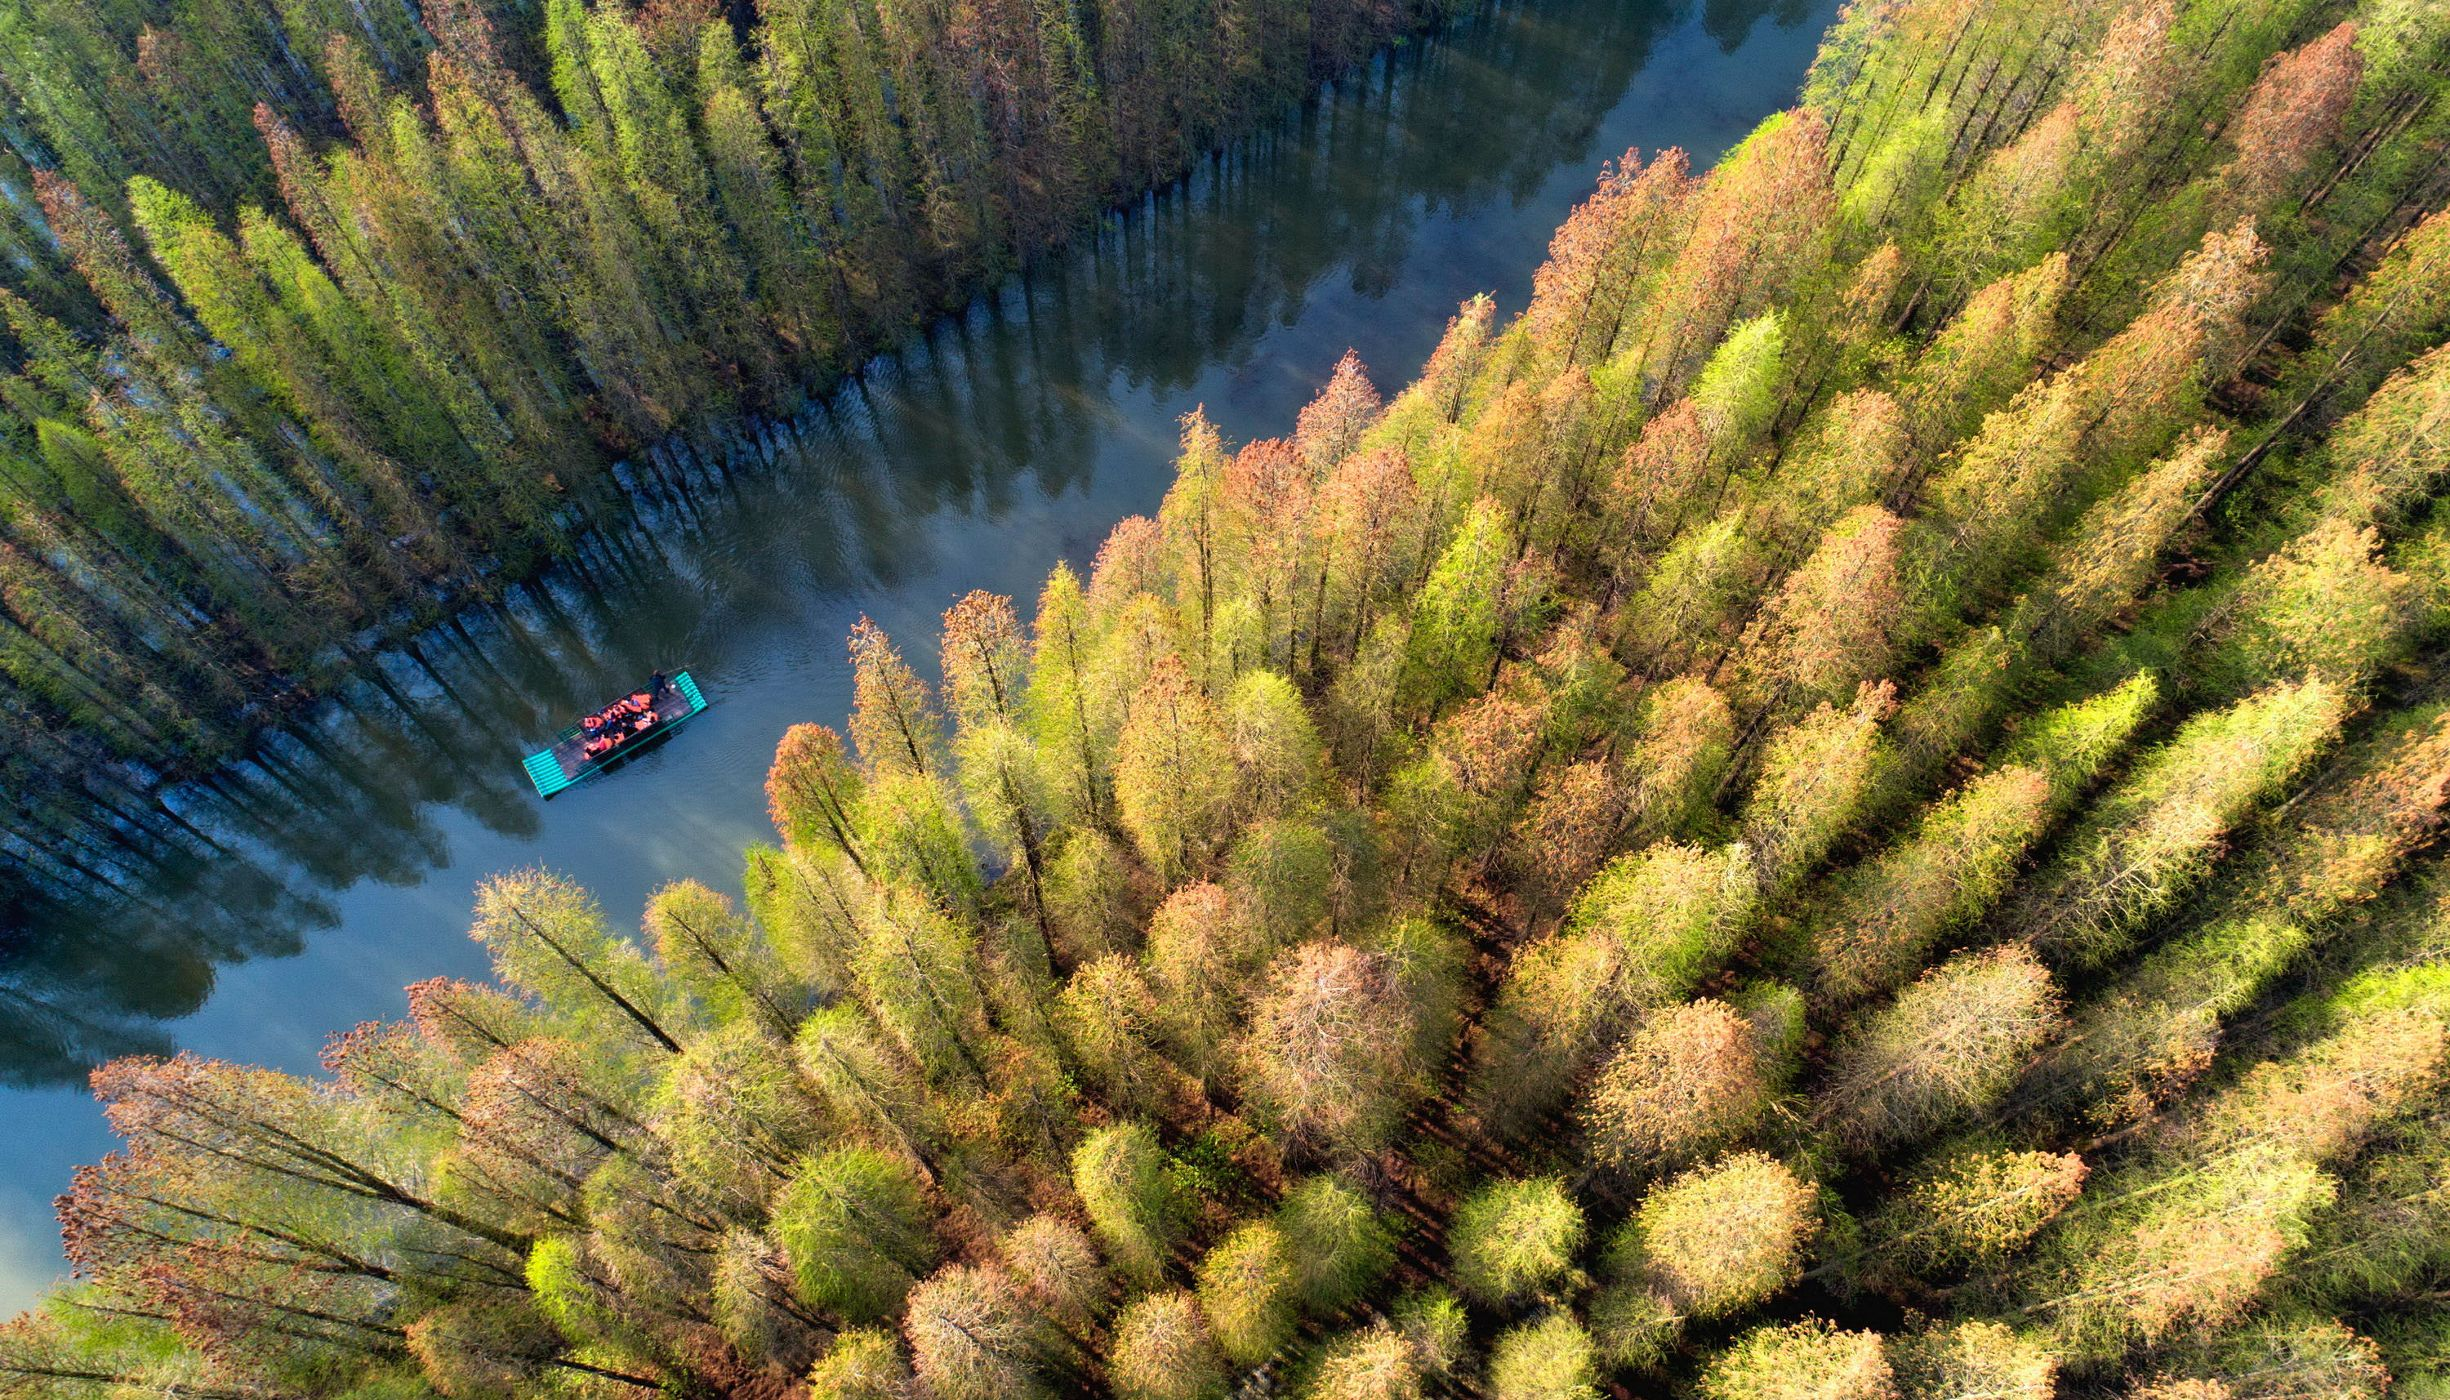 River cuts through the forest in China